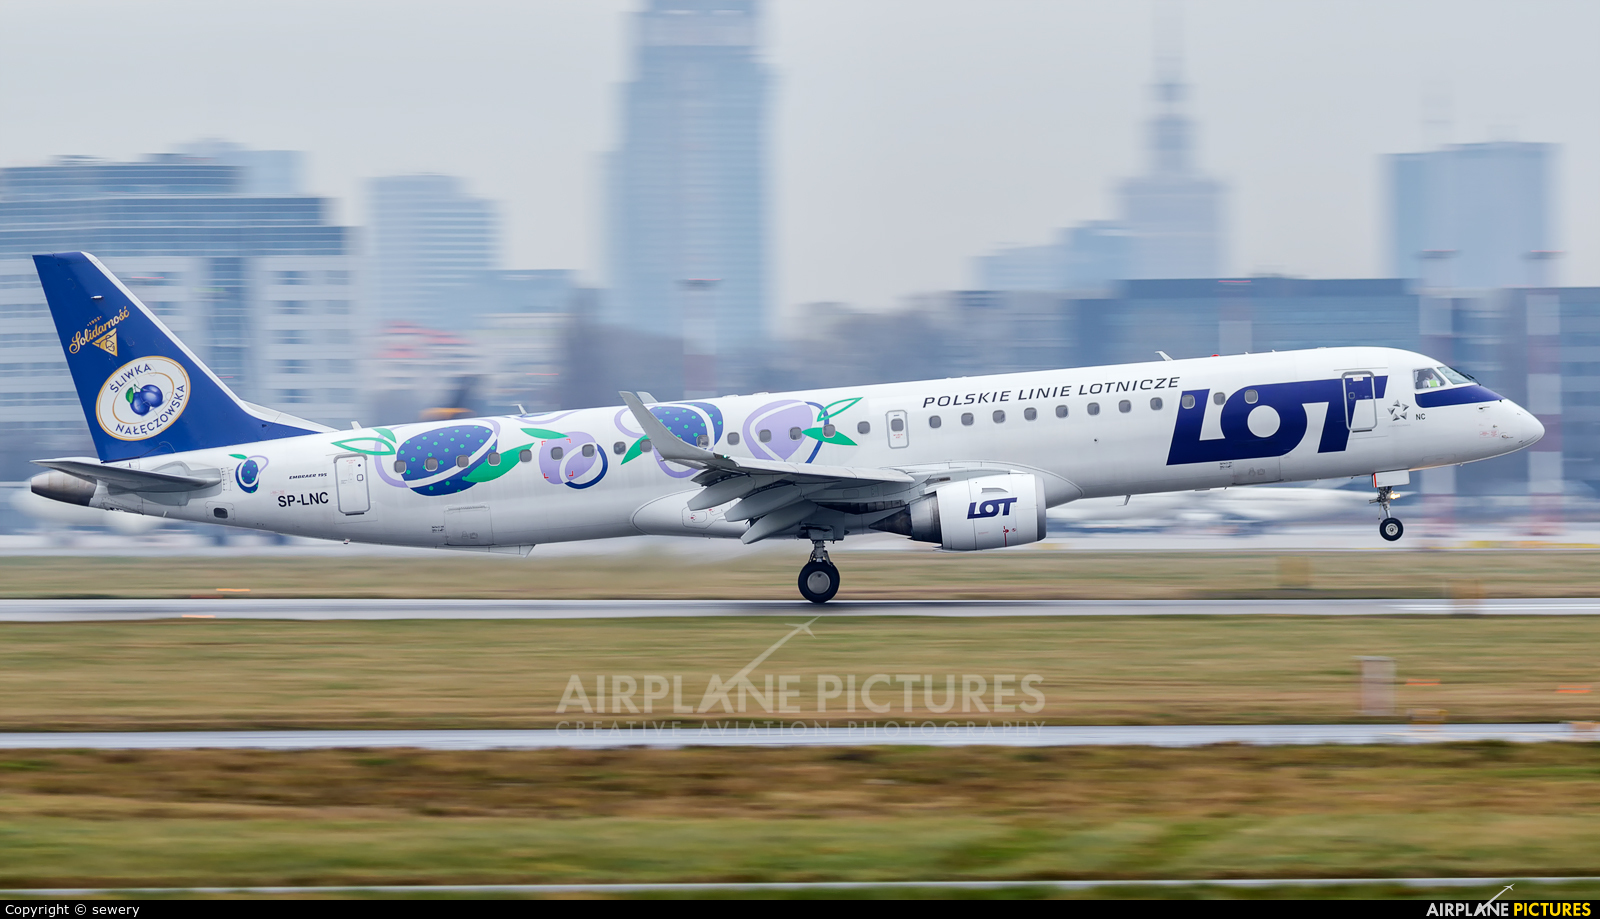 LOT - Polish Airlines SP-LNC aircraft at Warsaw - Frederic Chopin